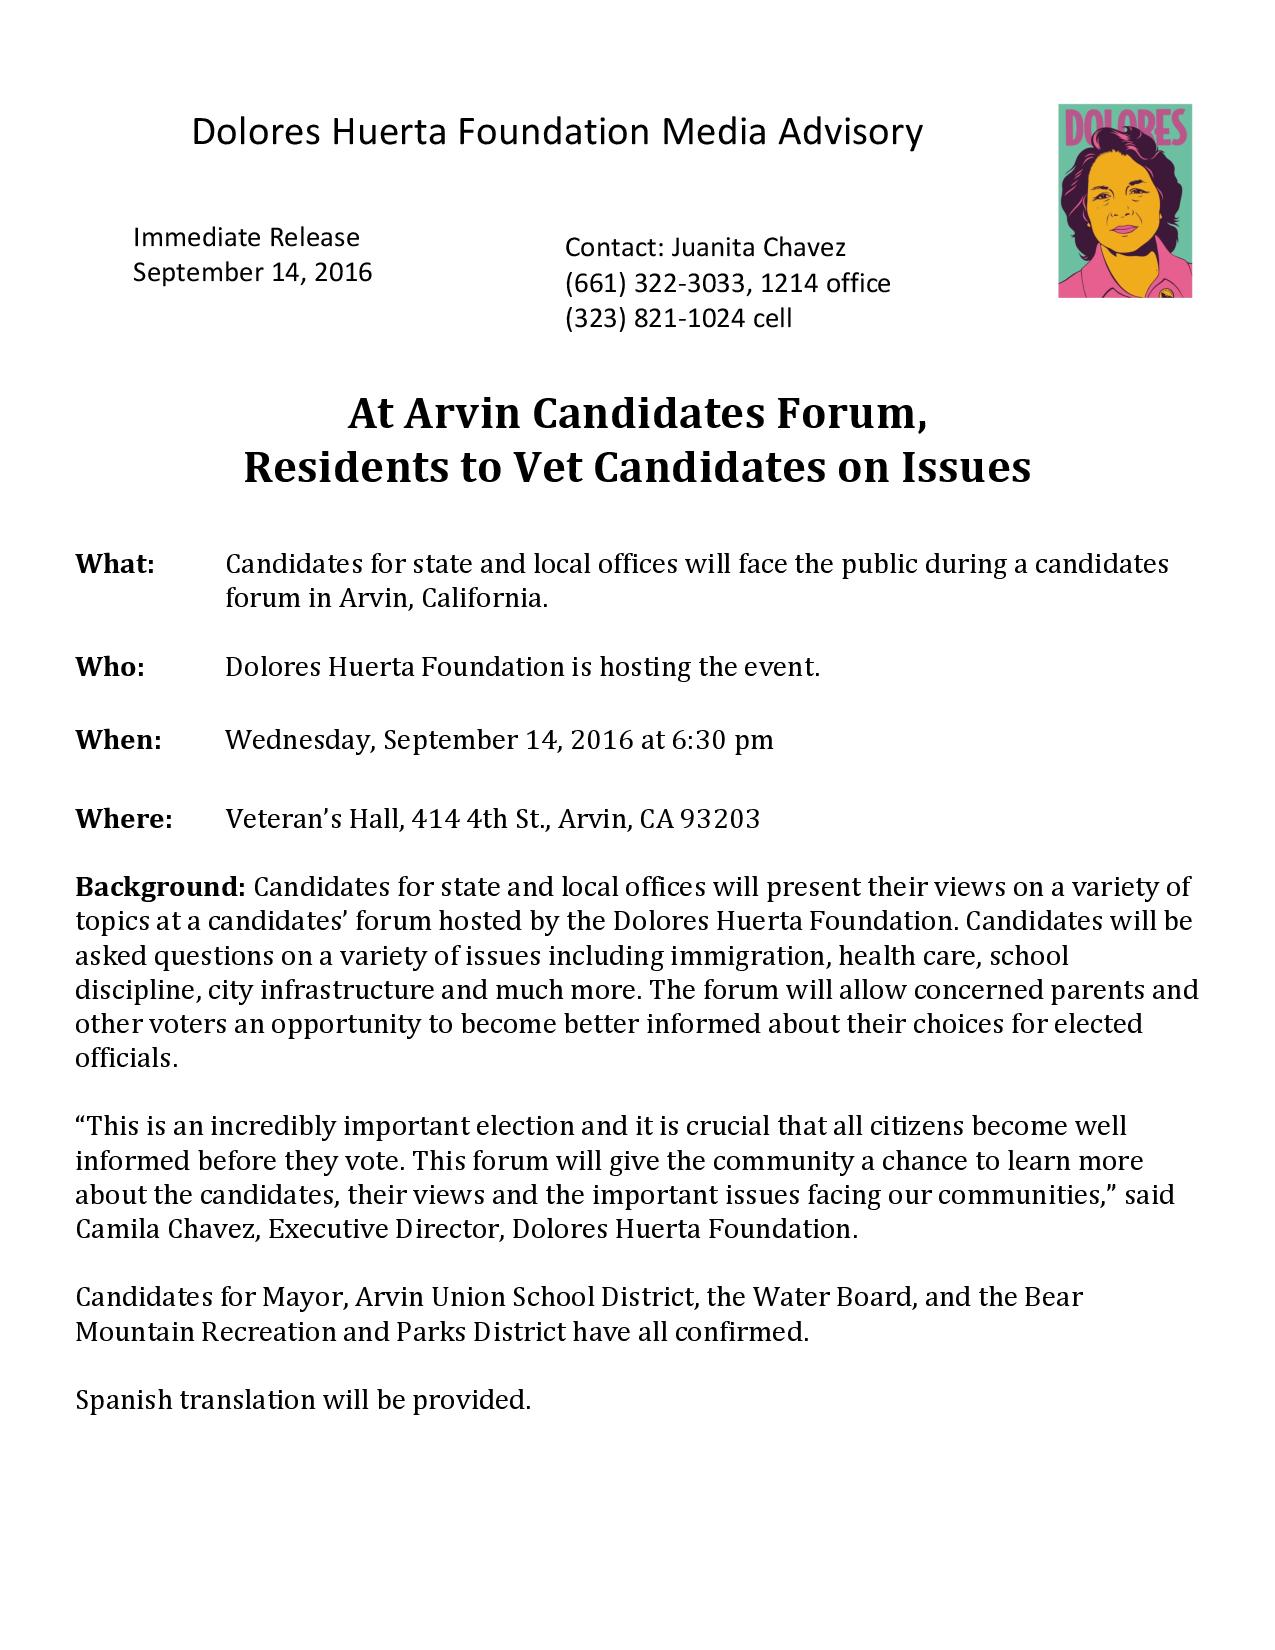 media-advisory-arvin-candidates-forum-9-14-16-page-001